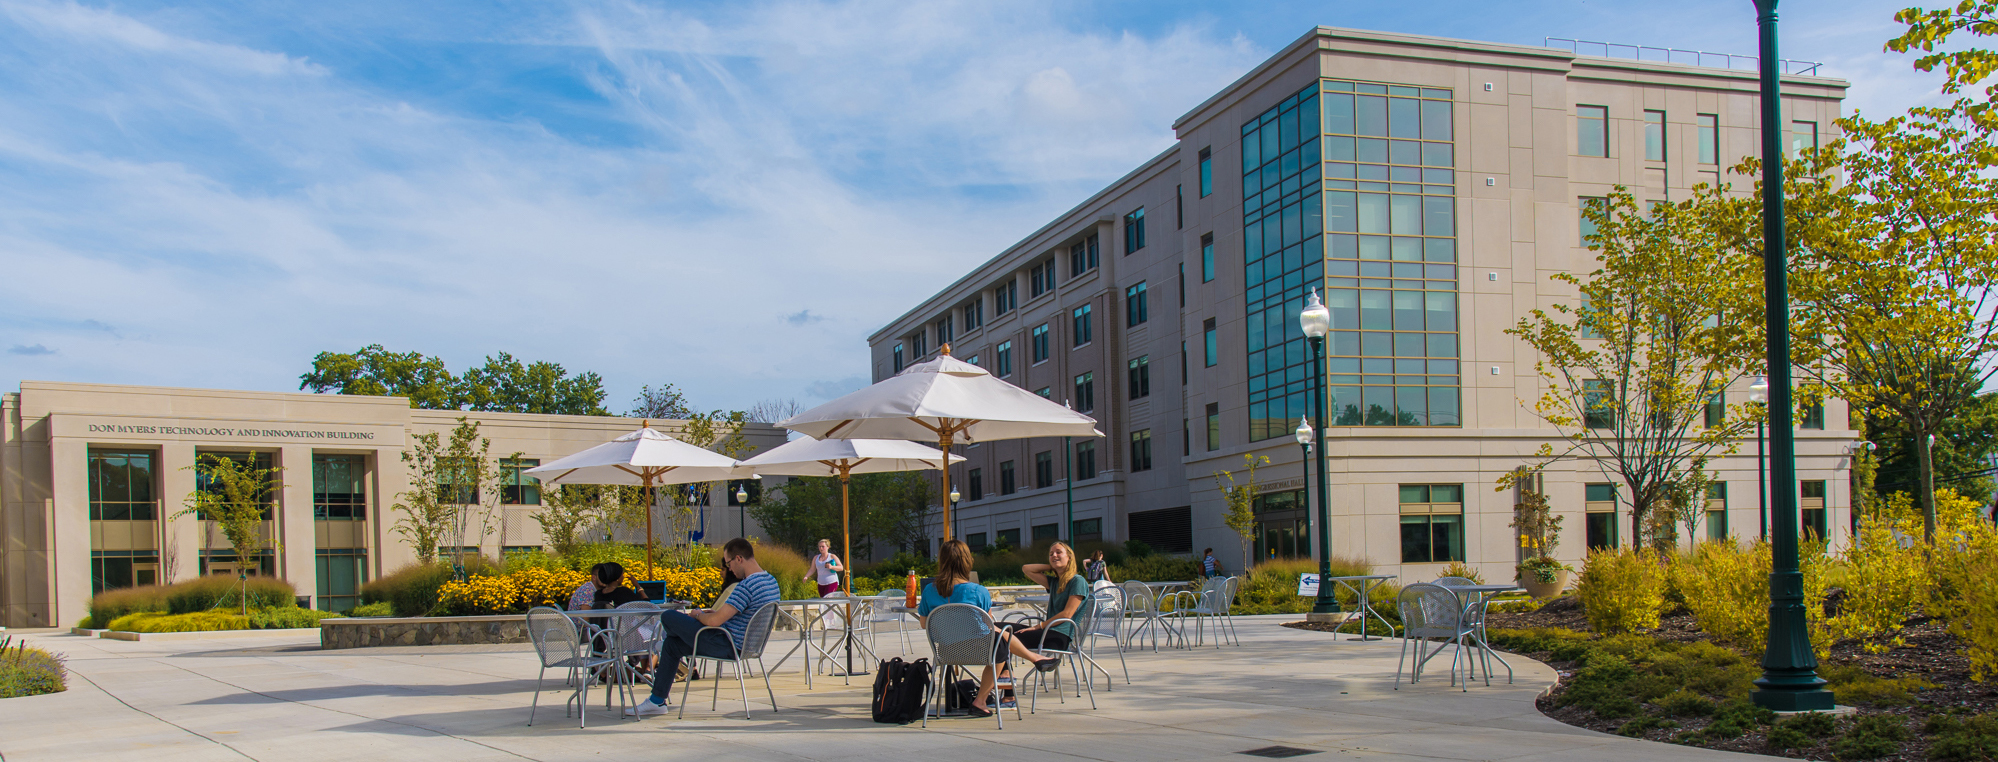 East Campus Commons Outdoor Seating